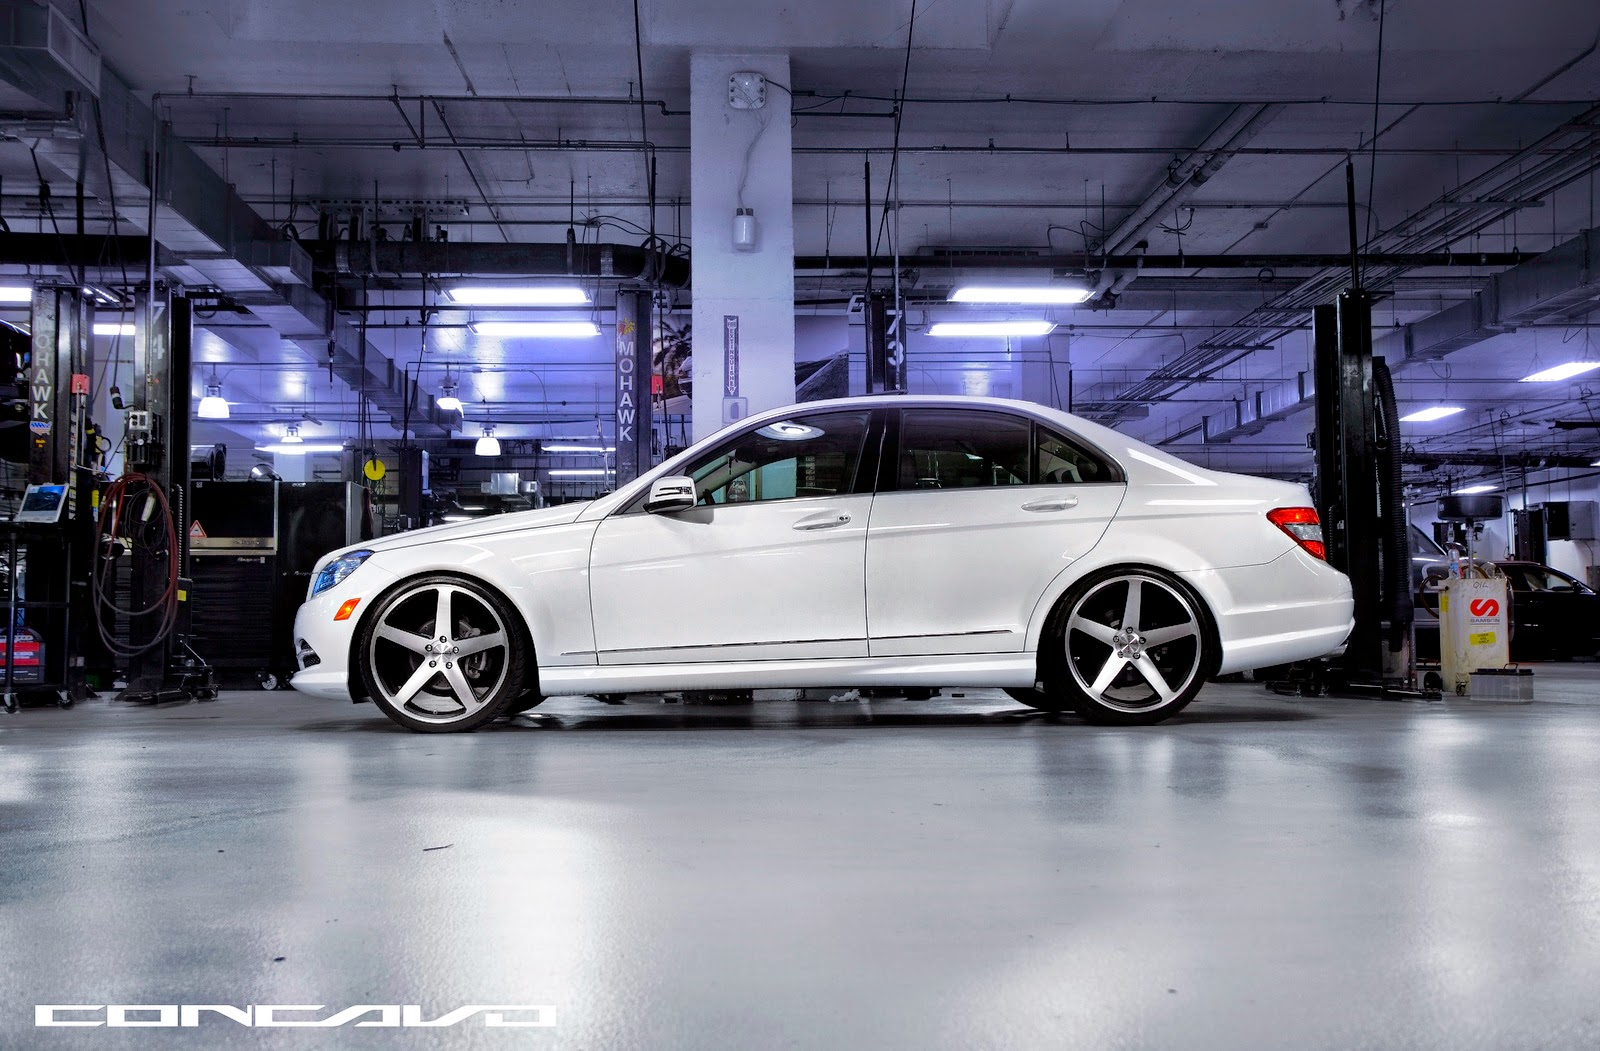 mercedes benz w204 c300 on 20 cw 5 concavo wheels